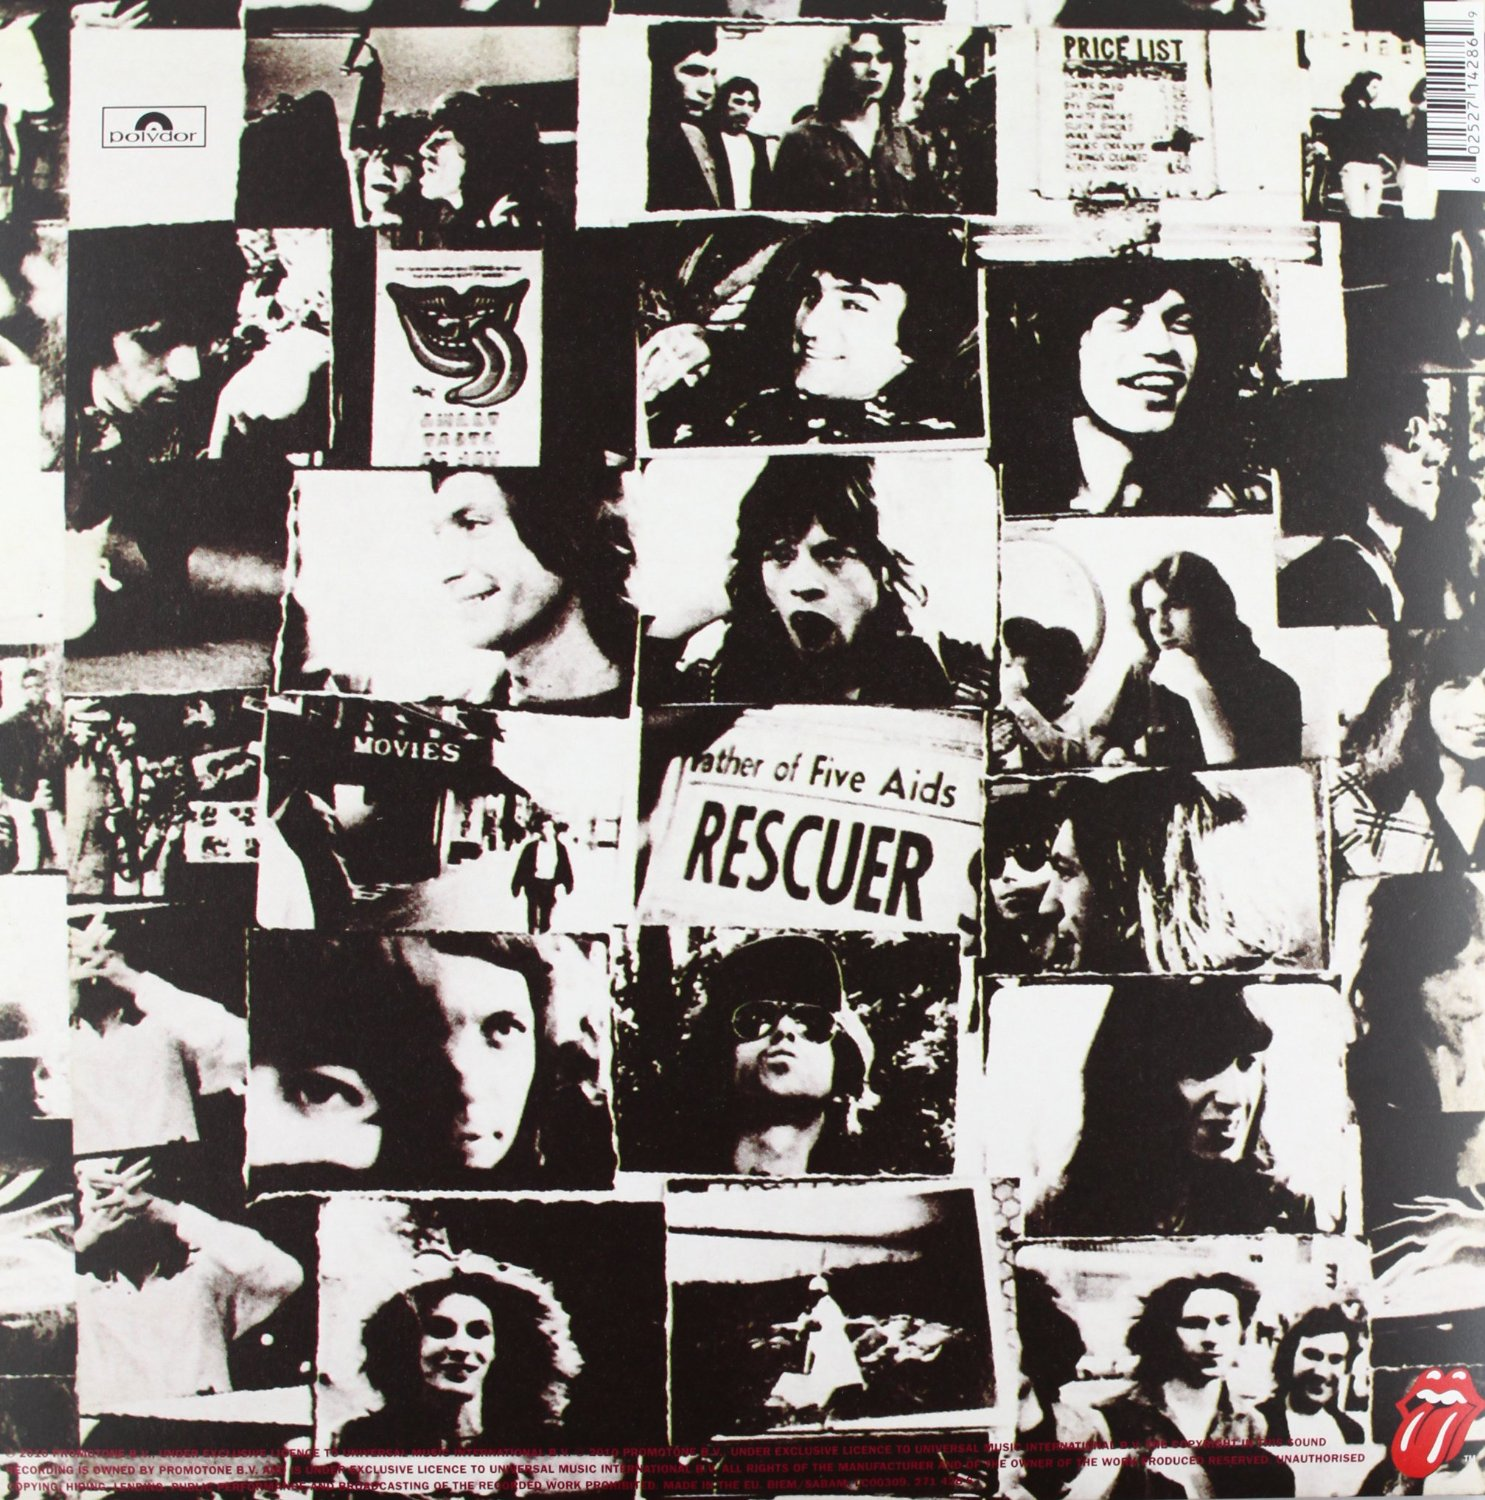 THE ROLLING STONES - Exile on main street_Retro